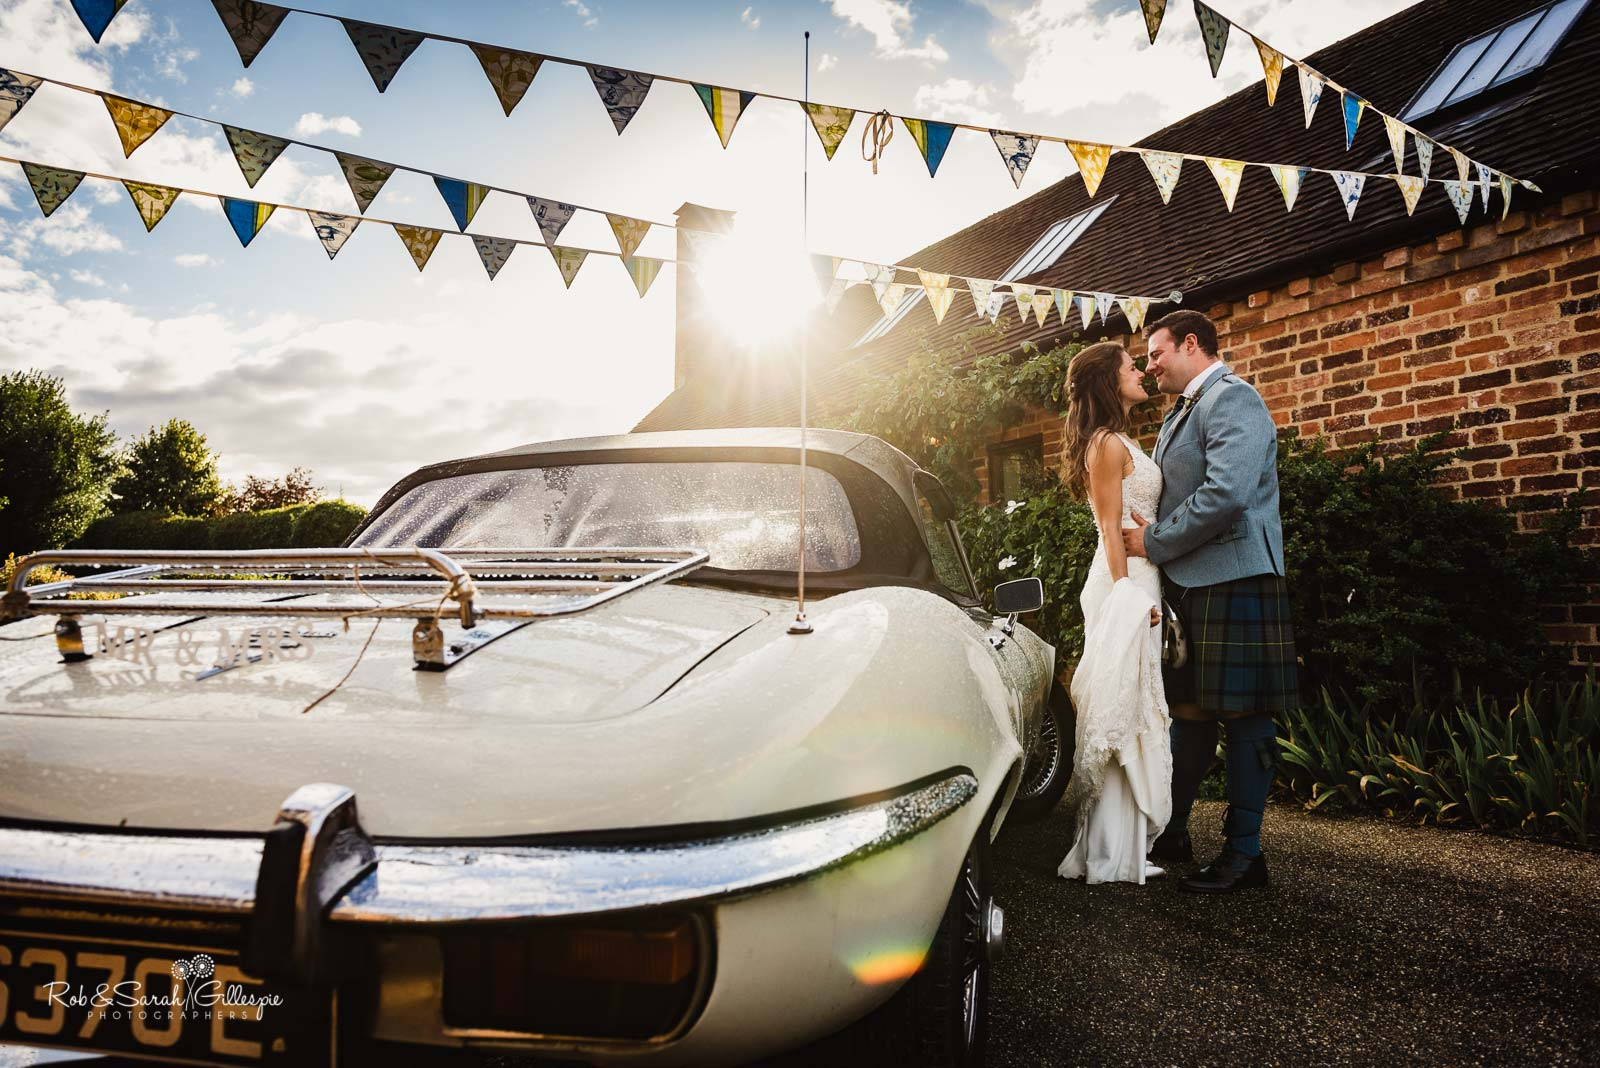 Bride and groom at Wethele Manor with sports car and bunting